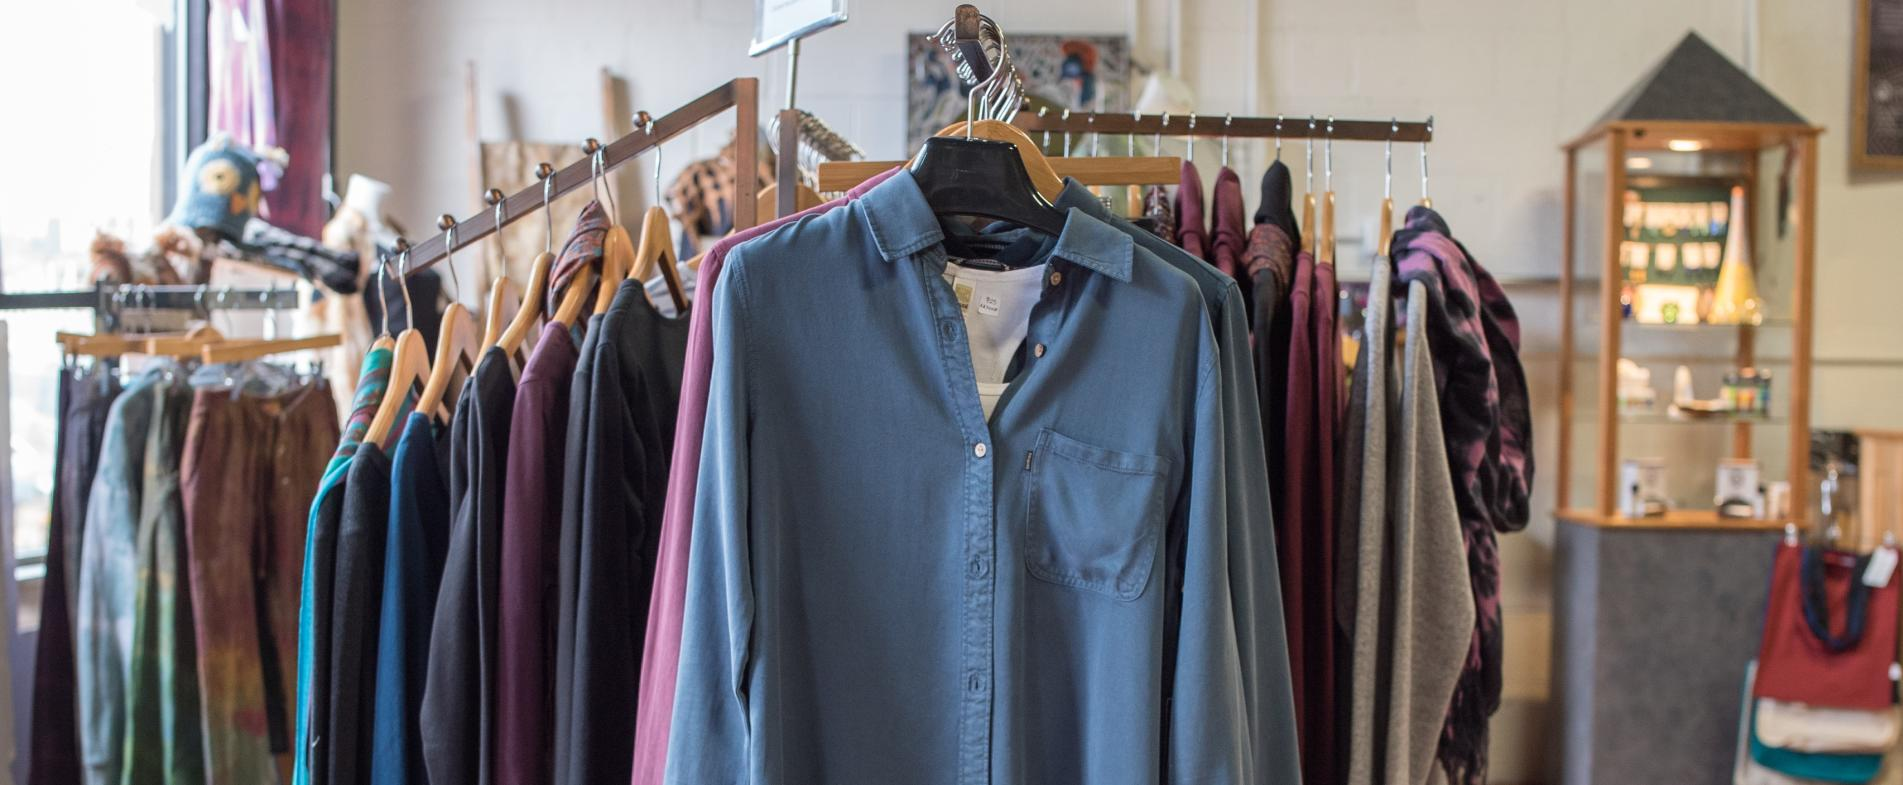 Clothing Matters offers sustainable clothing options online.